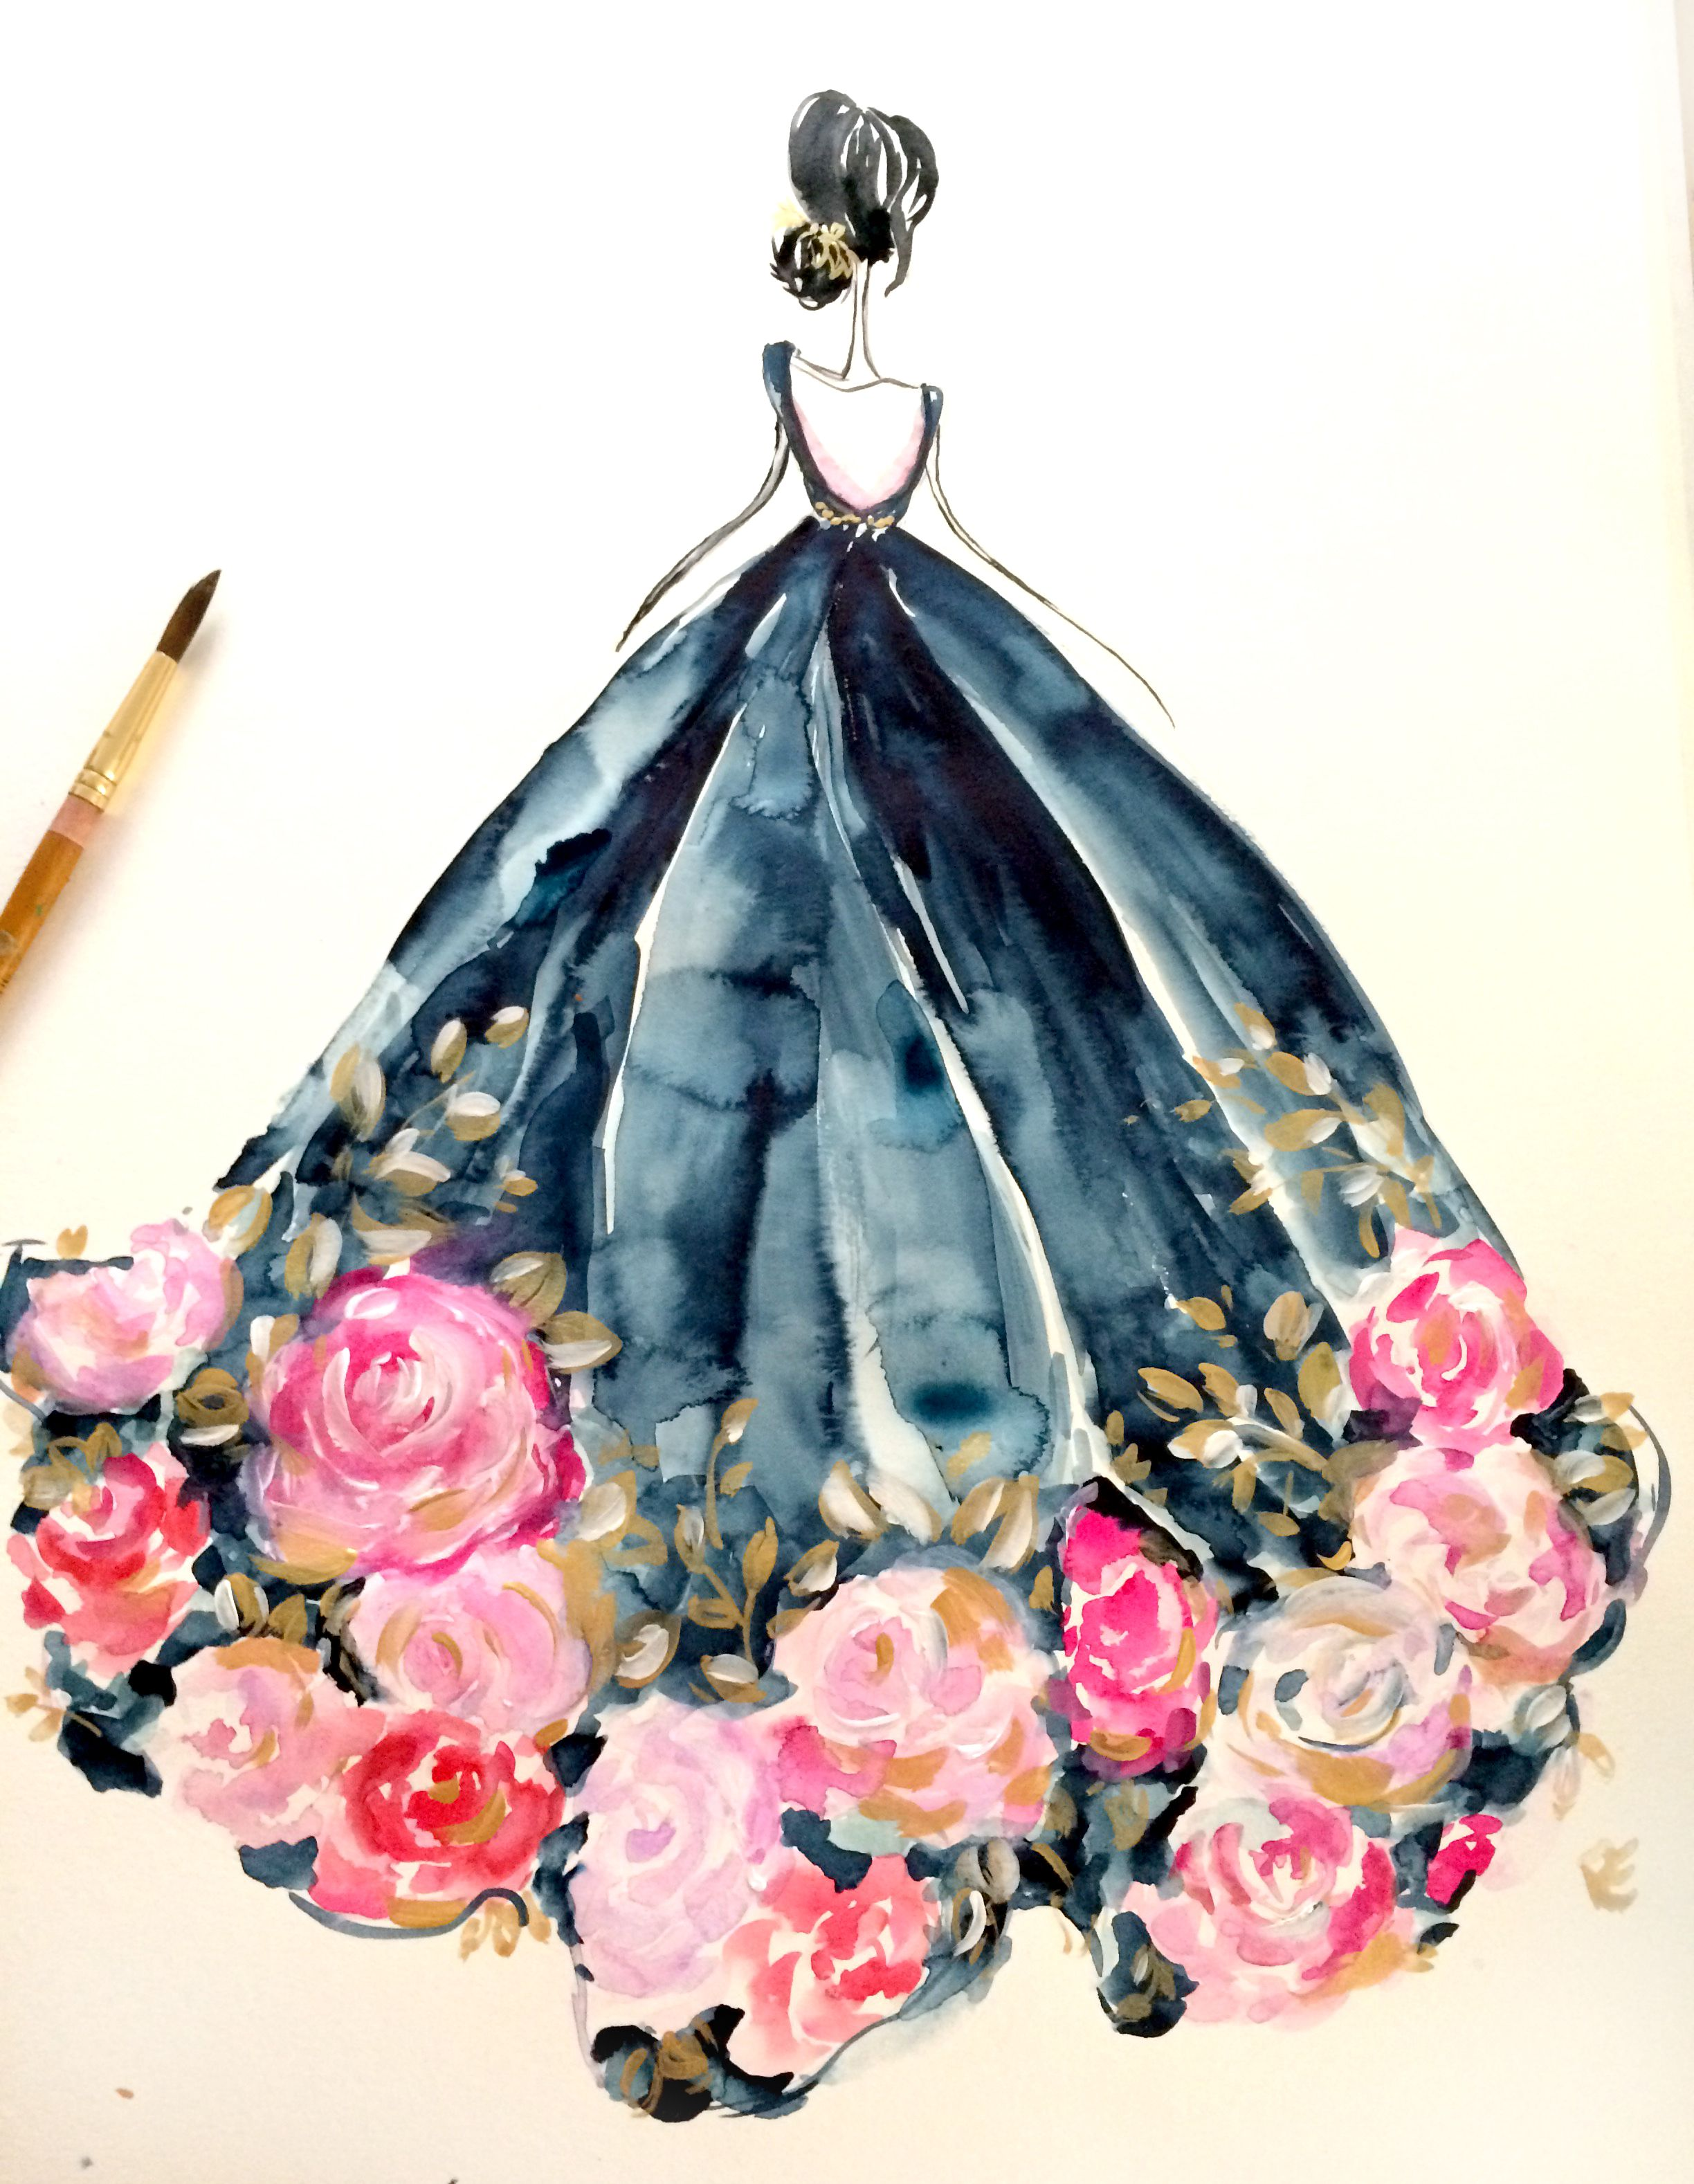 Pink dress illustration  Pin by Mei Ting Pong on Card ideas  Pinterest  Elie saab gowns